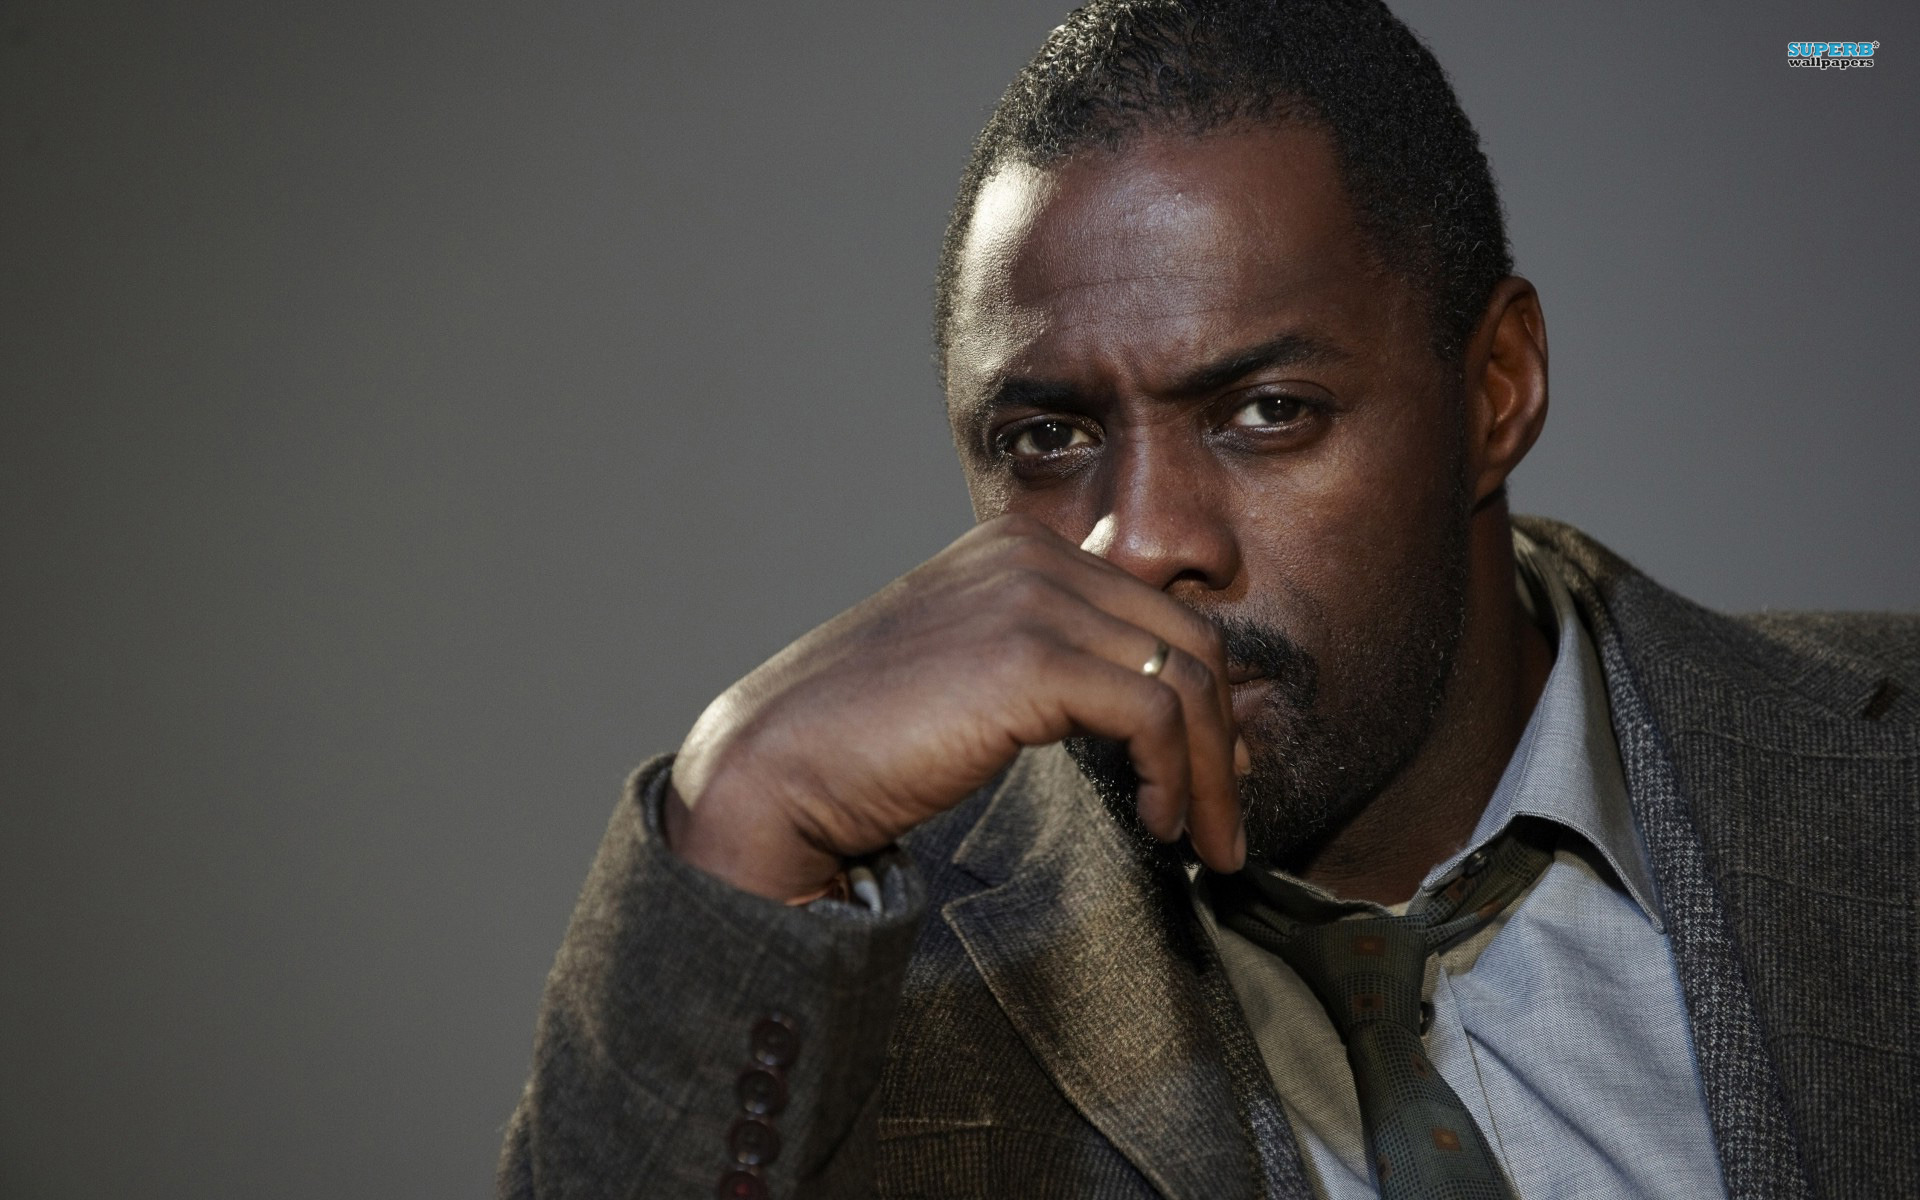 Idris Elba played Stringer in the HBO's hit show 'The Wire,' but rarely watched the show because he was too critical of his own work.